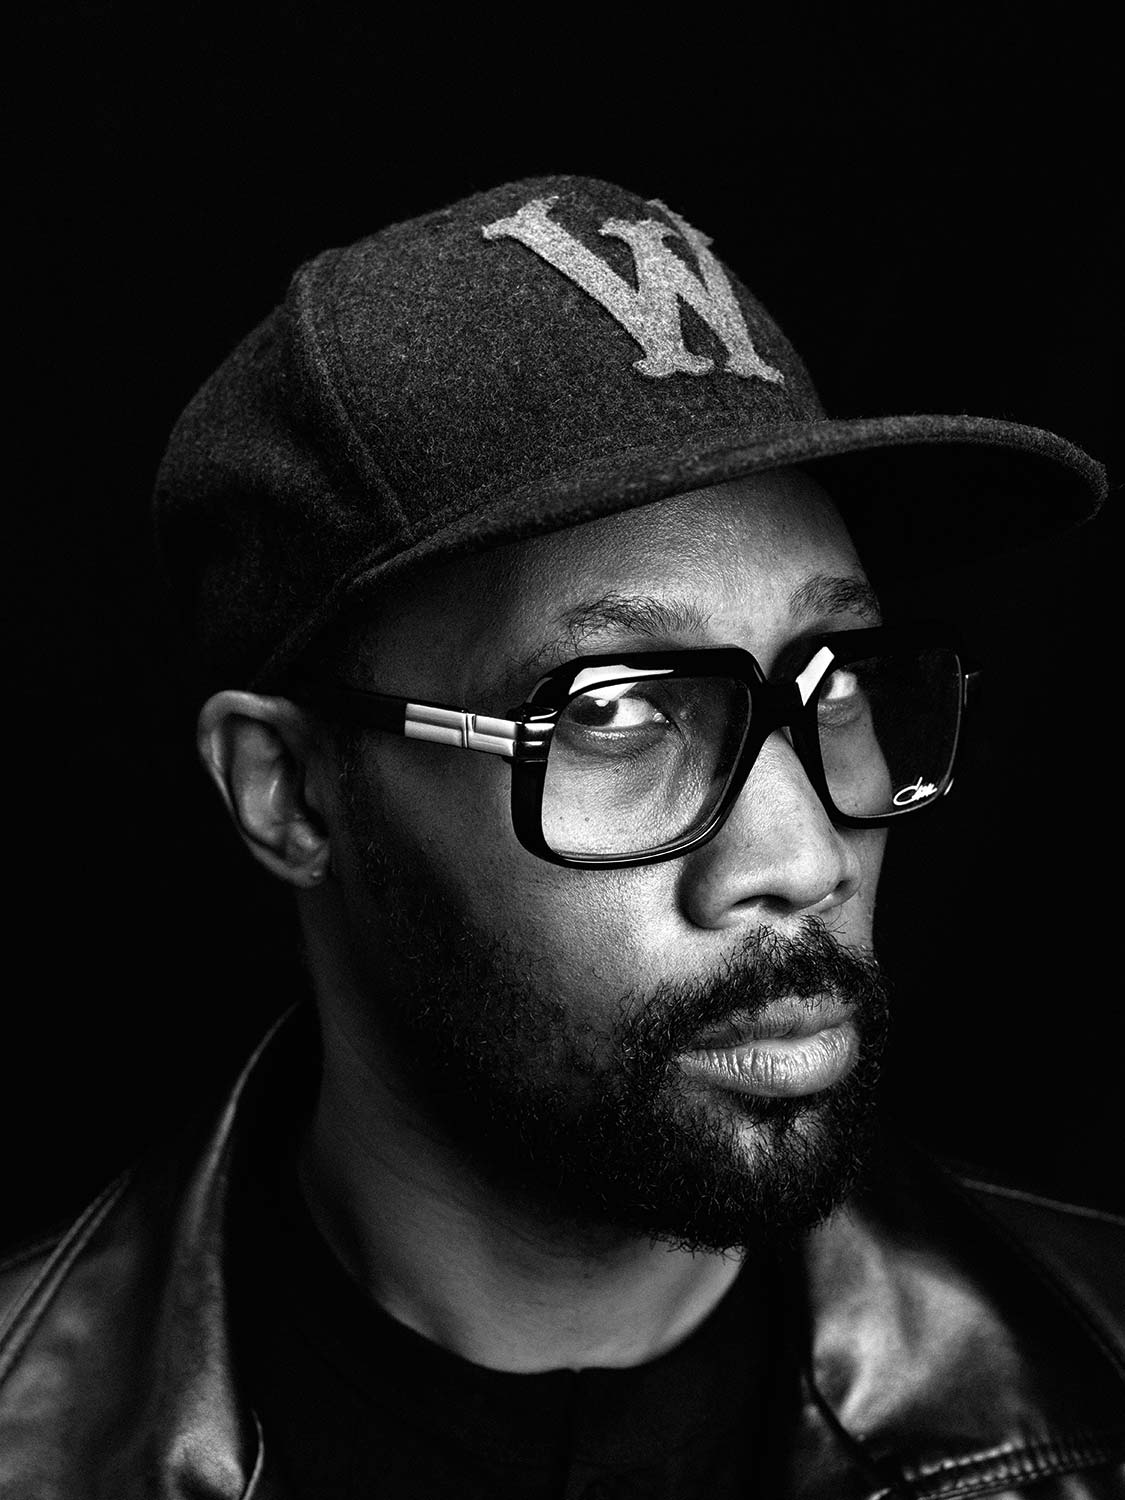 Wu Tang Clan Rapper / Producer RZA and his path to veganism – shot by Lukas Maeder for Vegan Good Life Magazine, re-published by Antagonist